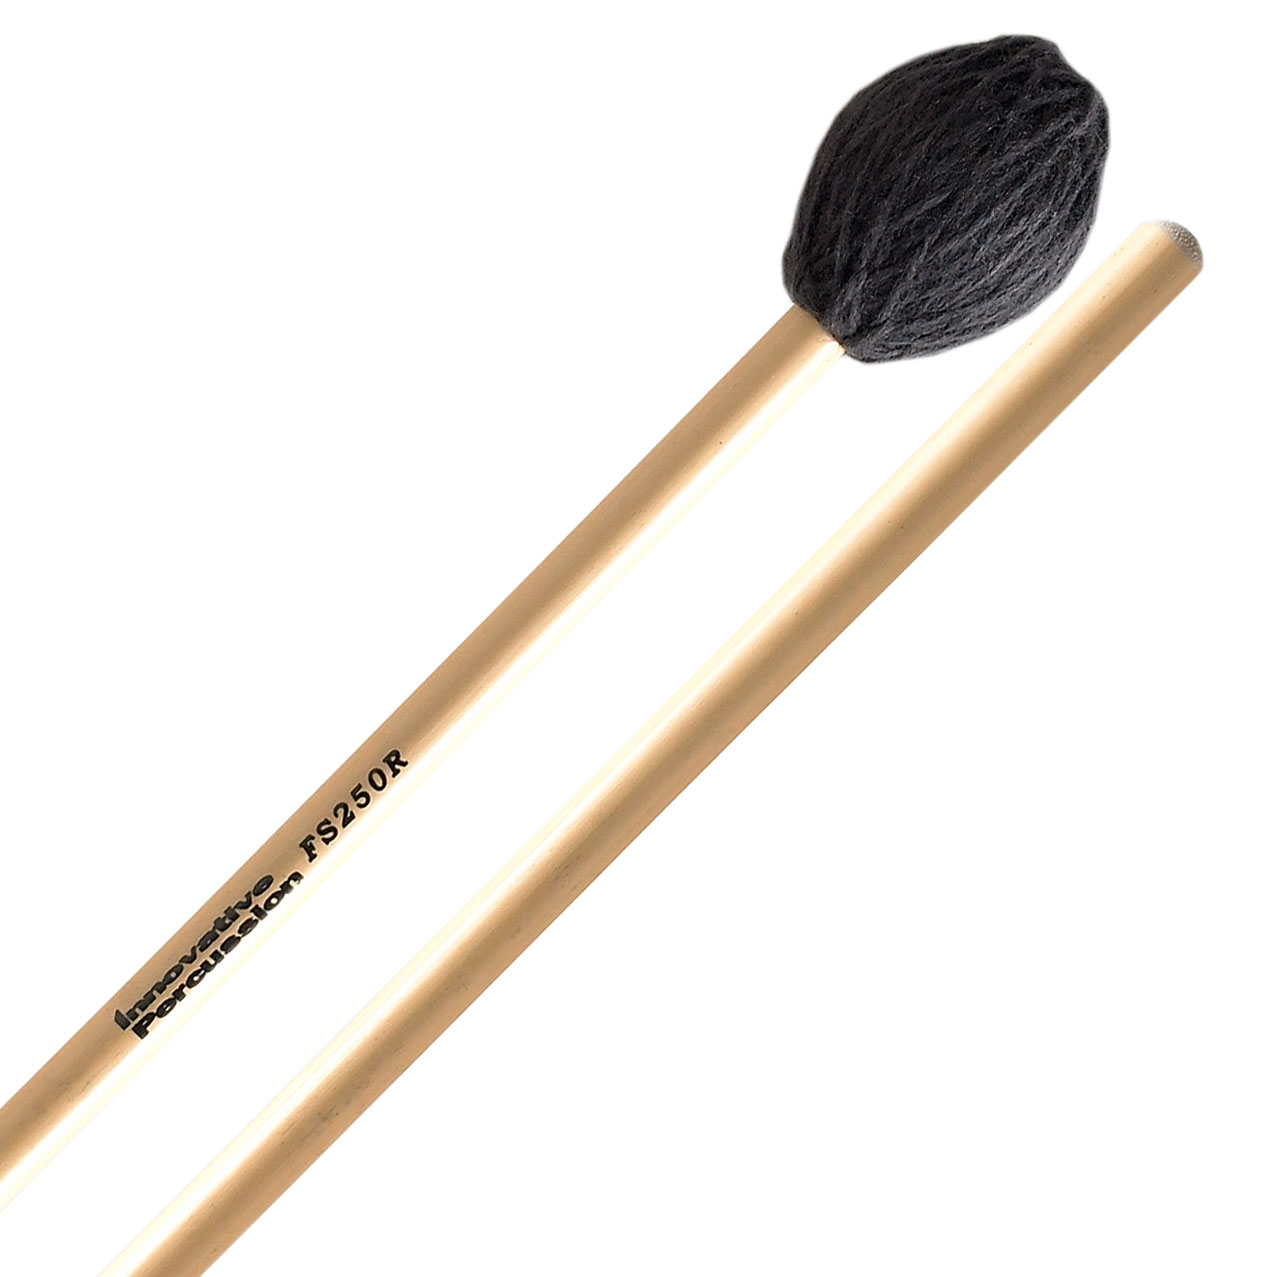 Innovative Percussion FS250R Field Series Hard Marimba Mallets with Rattan Shafts